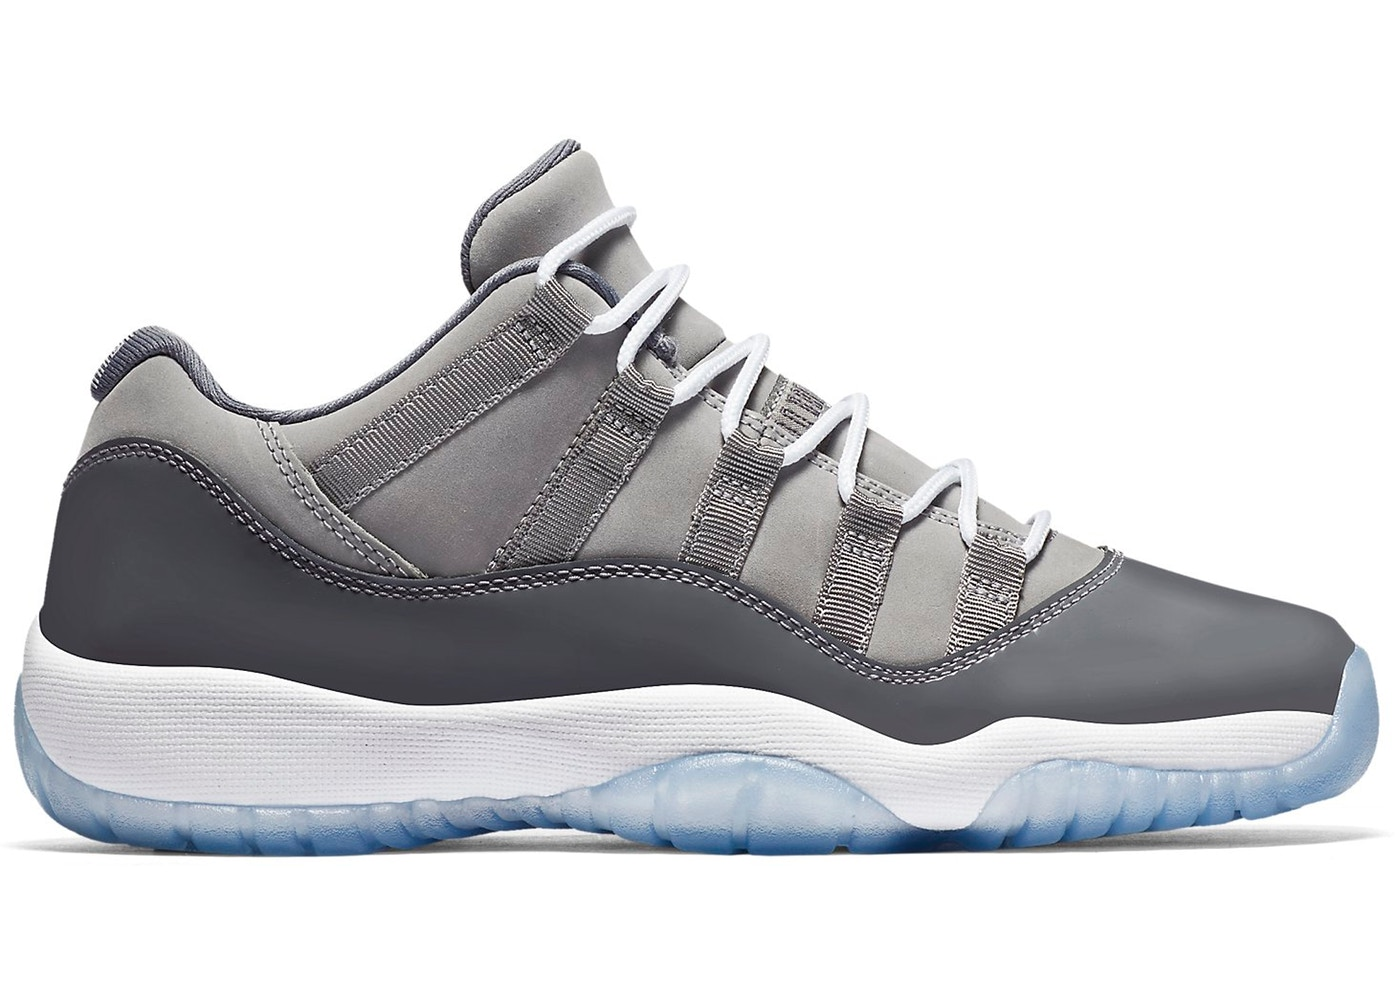 buy online c06f0 f3ad2 Jordan 11 Retro Low Cool Grey (GS)